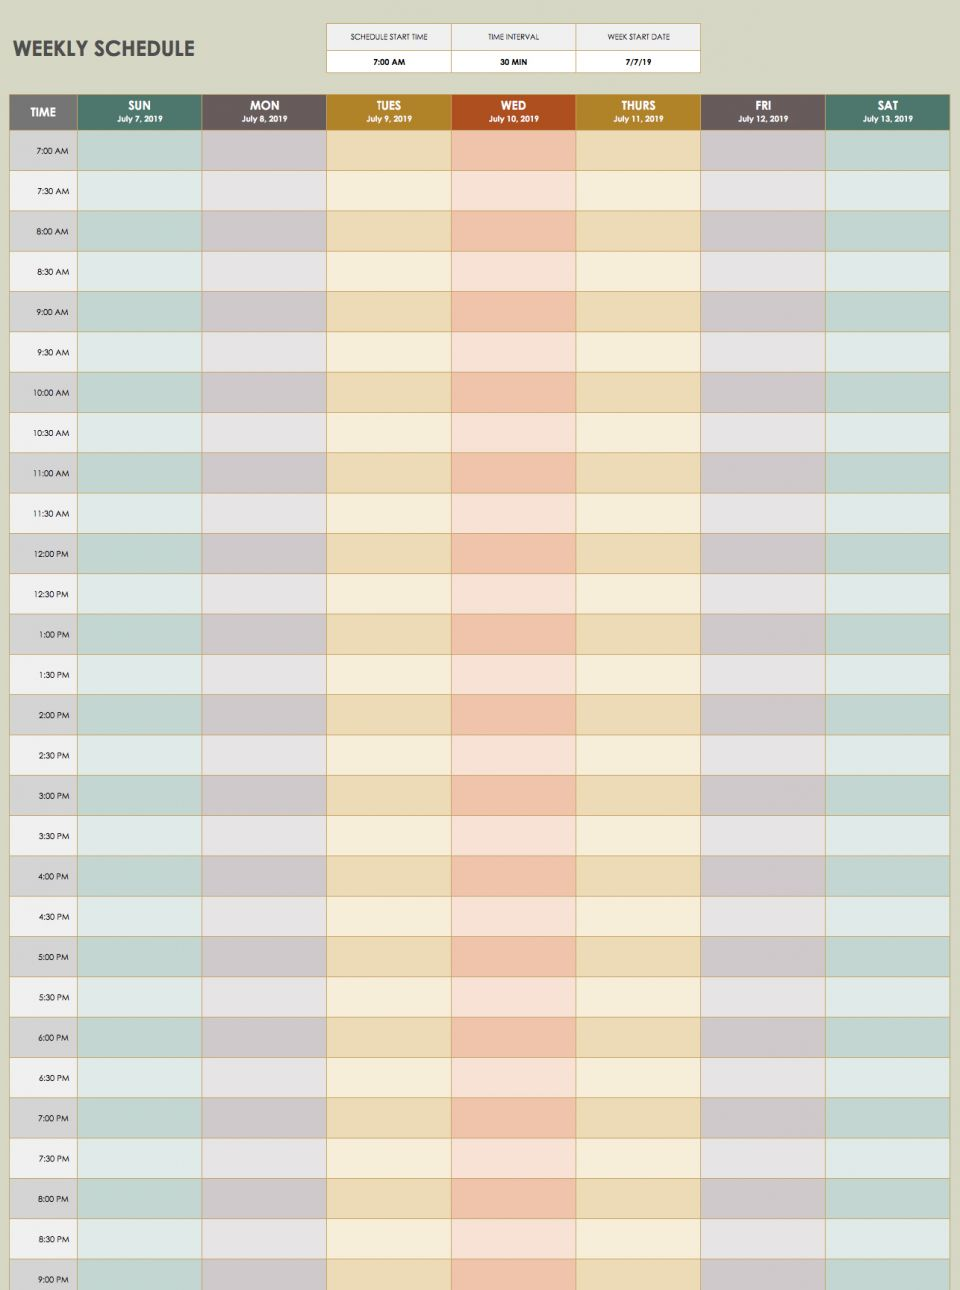 On This Time Management Schedule Template, You Can Set The Time Interval  And Start Date To Suit Your Needs. Time Intervals Range From 10 To 120  Minutes,